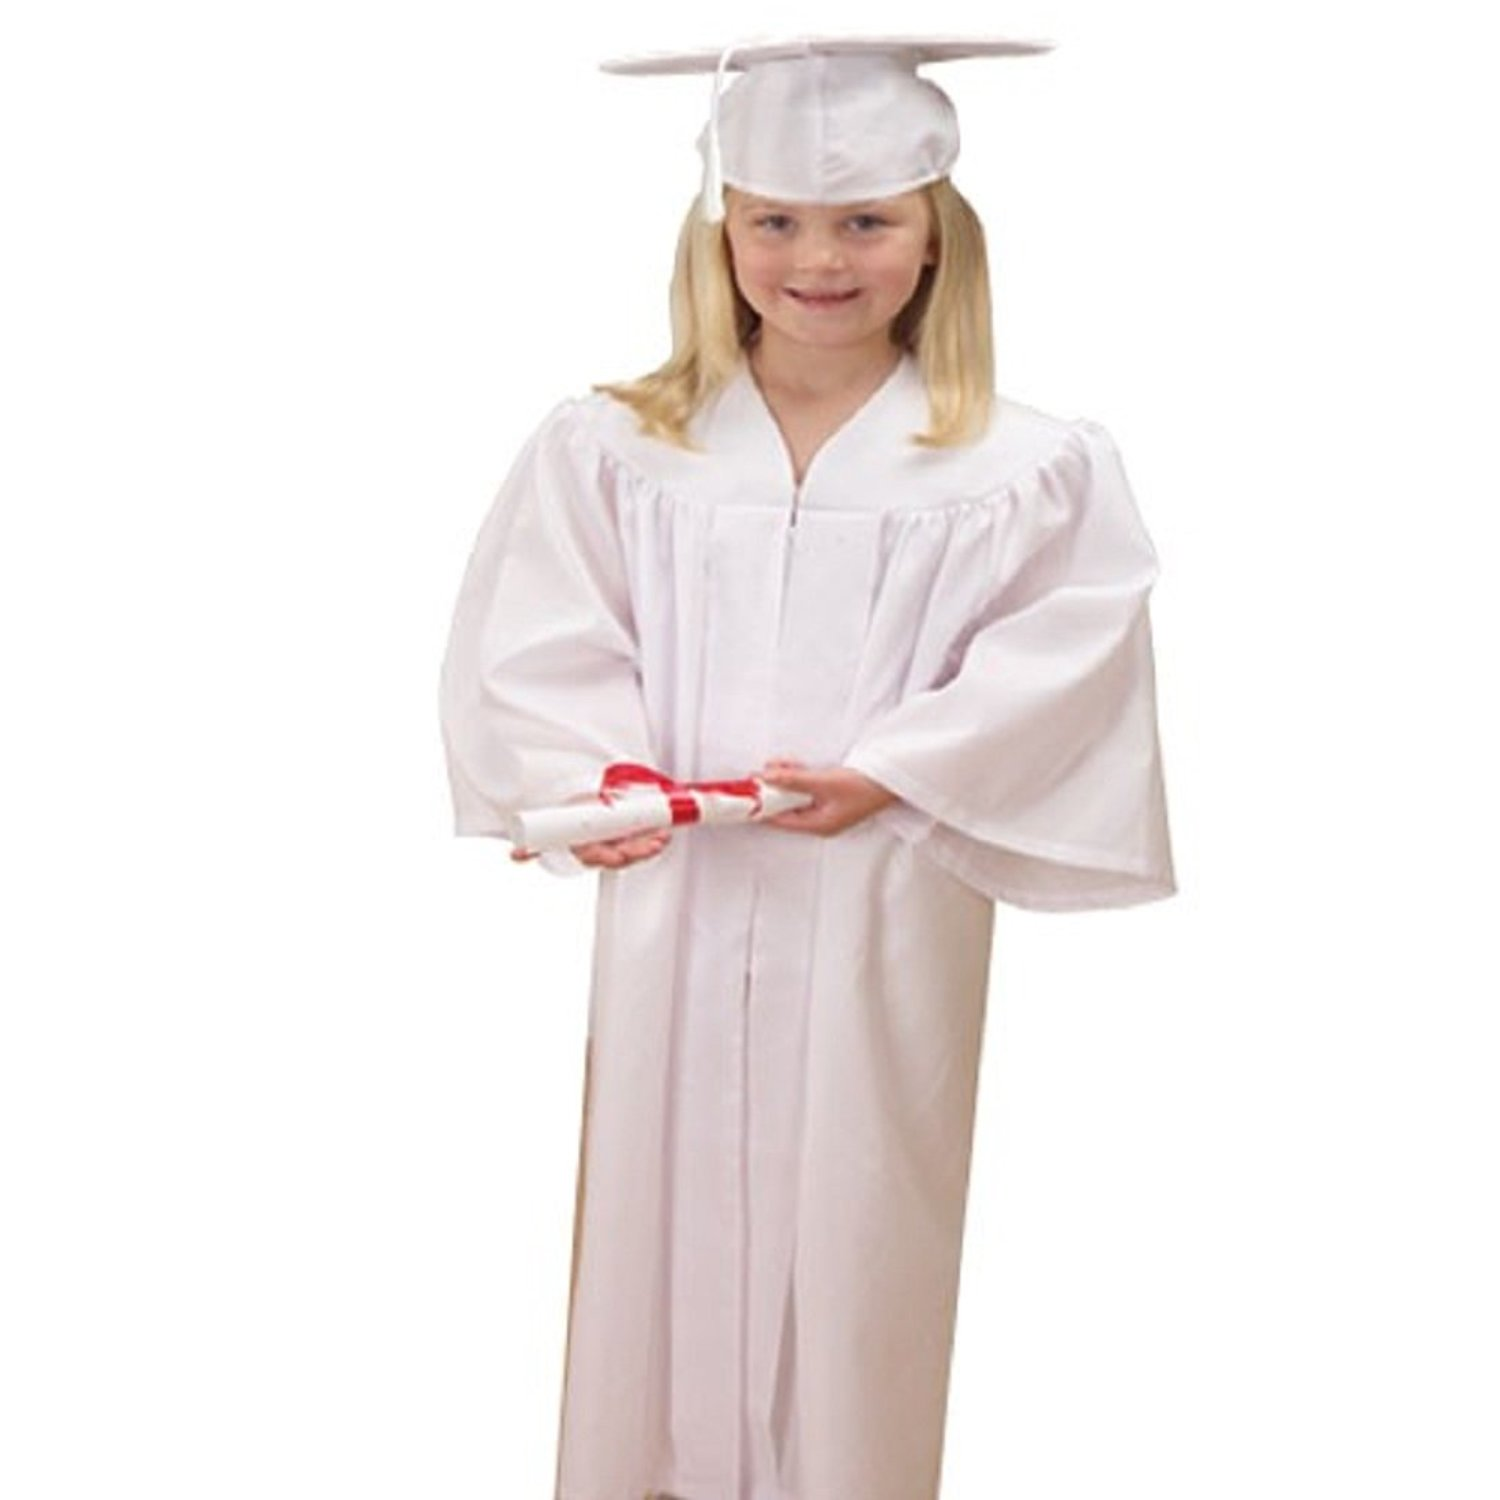 Buy US Toy -Kids White Graduation Cap & Gown, Polyester, Gown Size ...